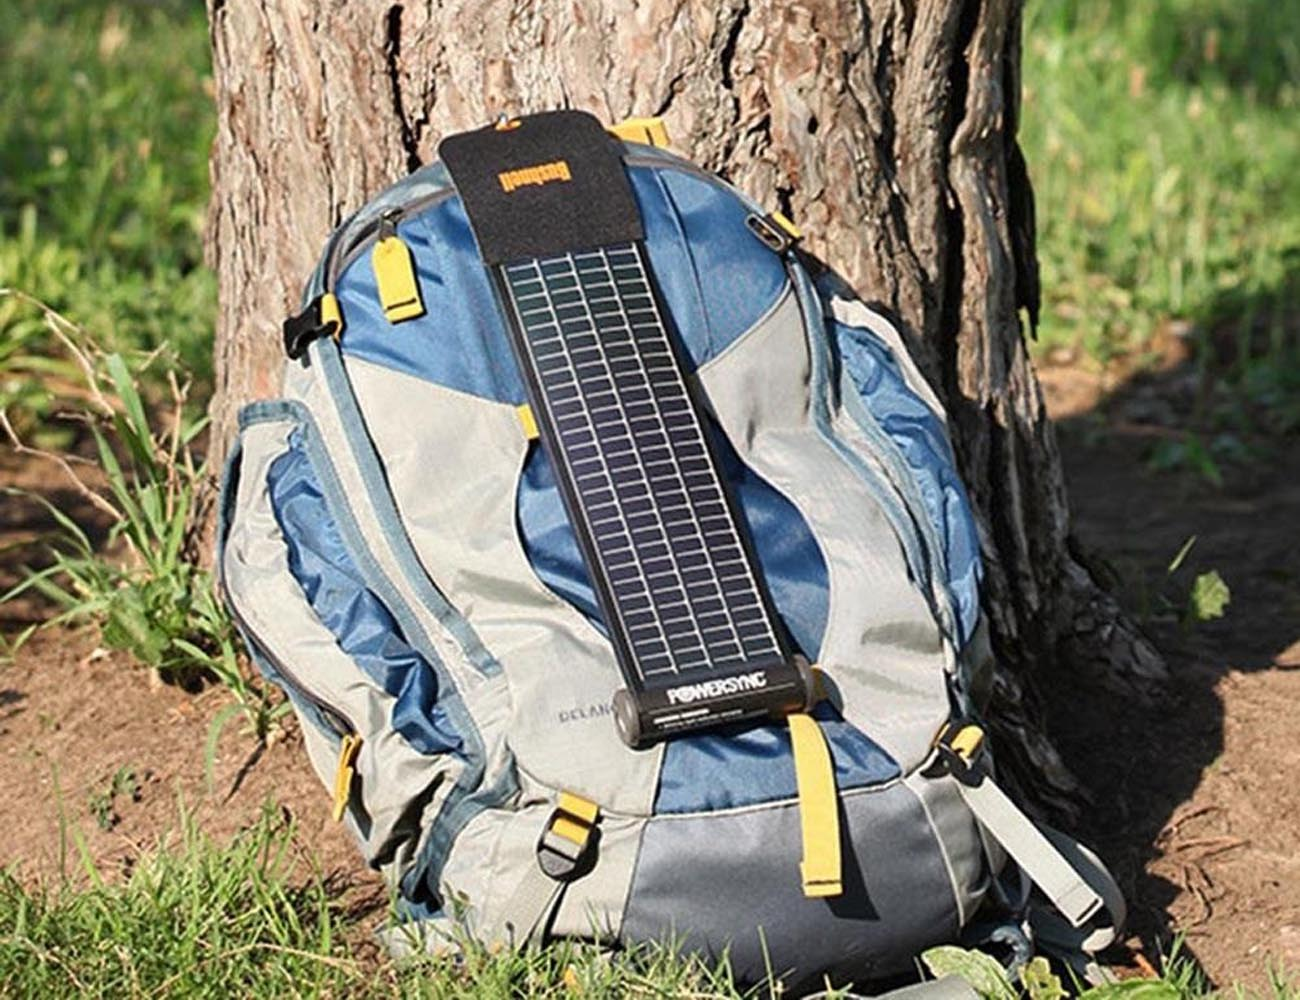 Bushnell+SolarWrap+%26%238211%3B+Solar+Power+Charger